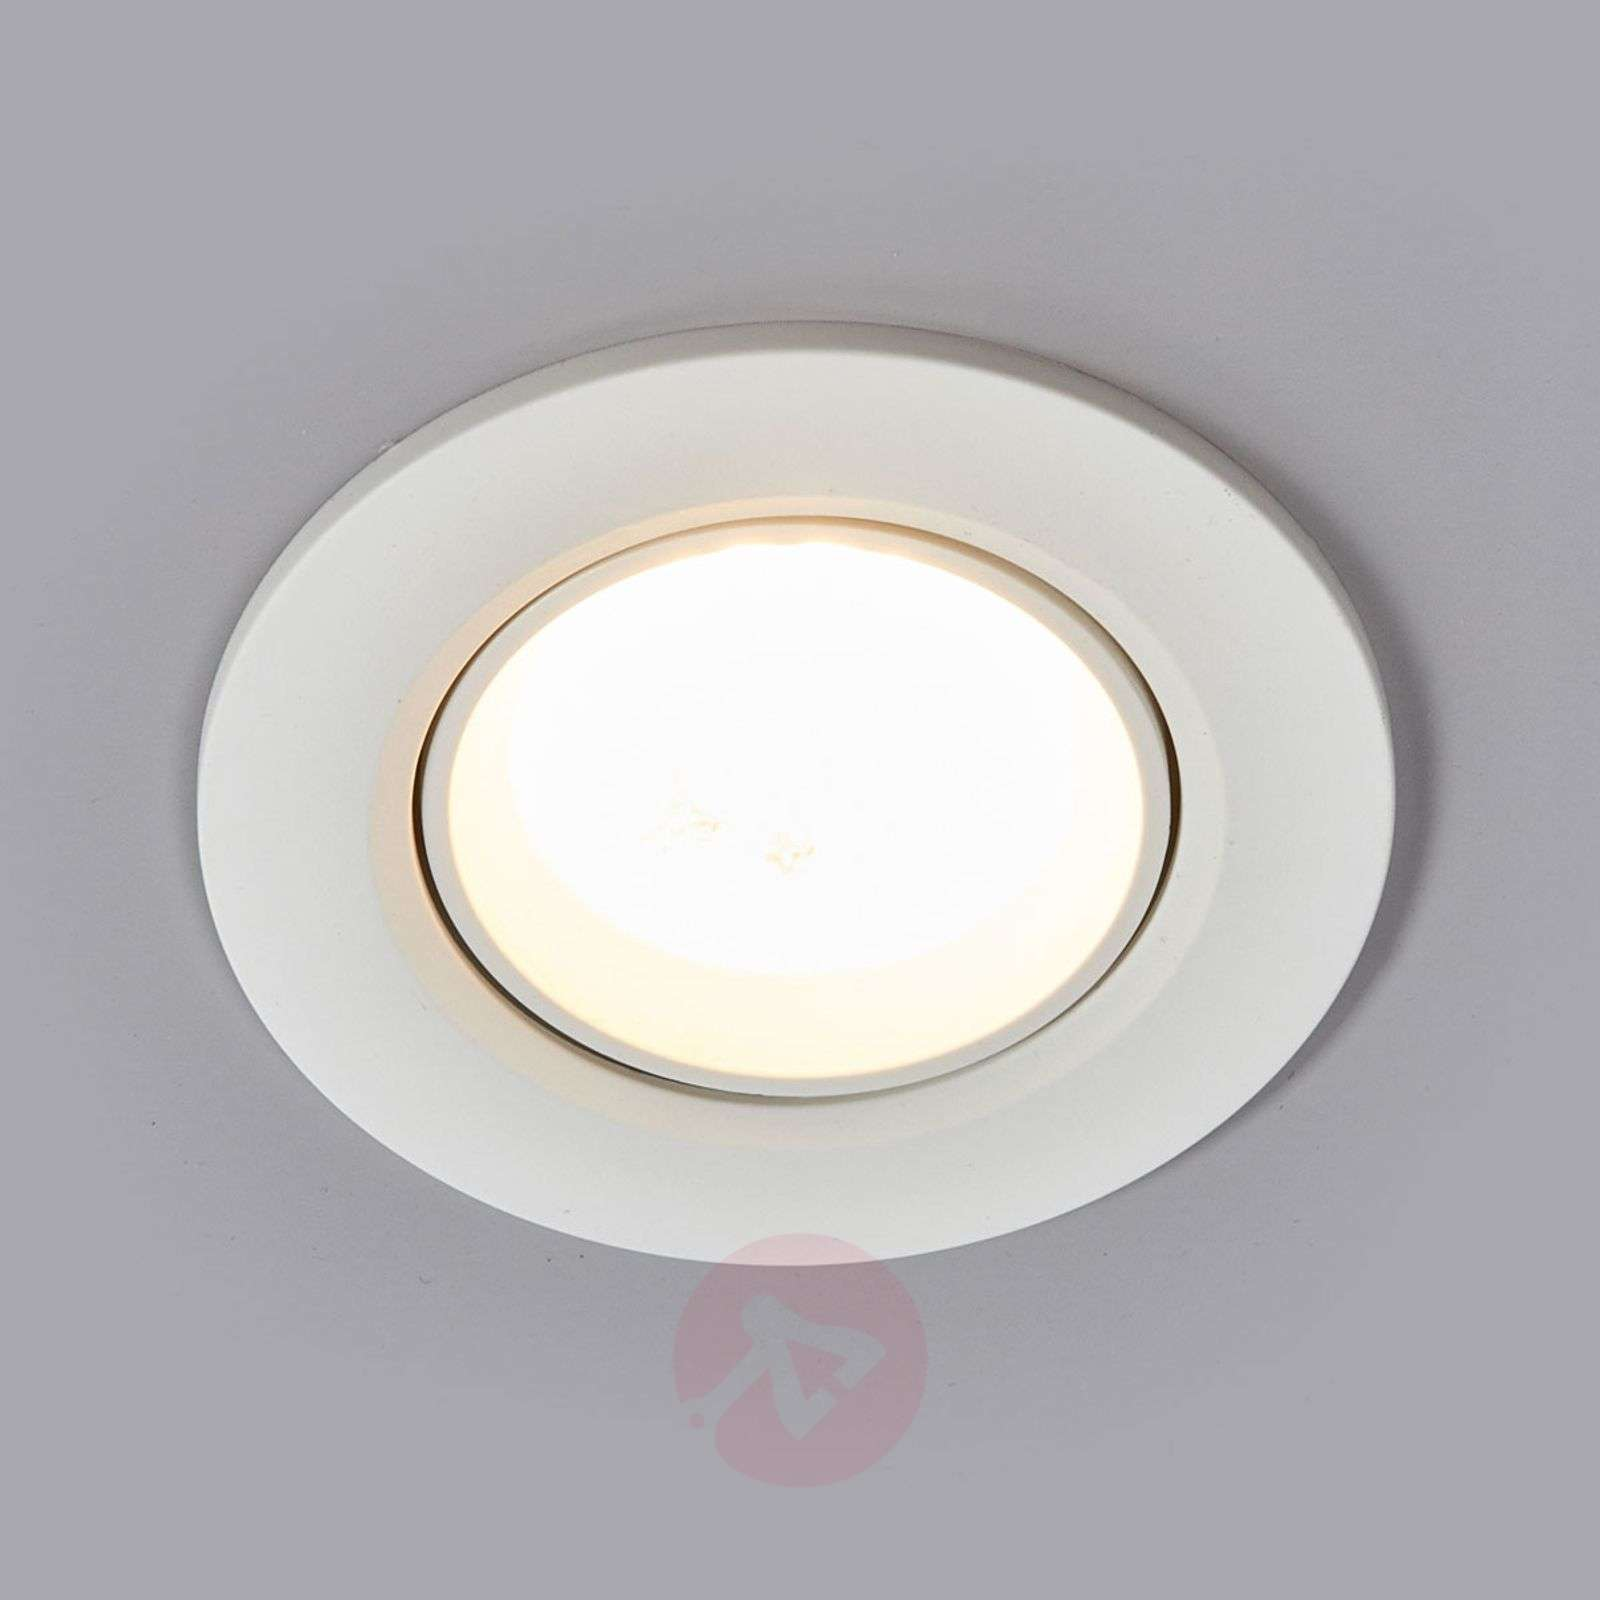 Quentin downlight LED bianco-9978038-02